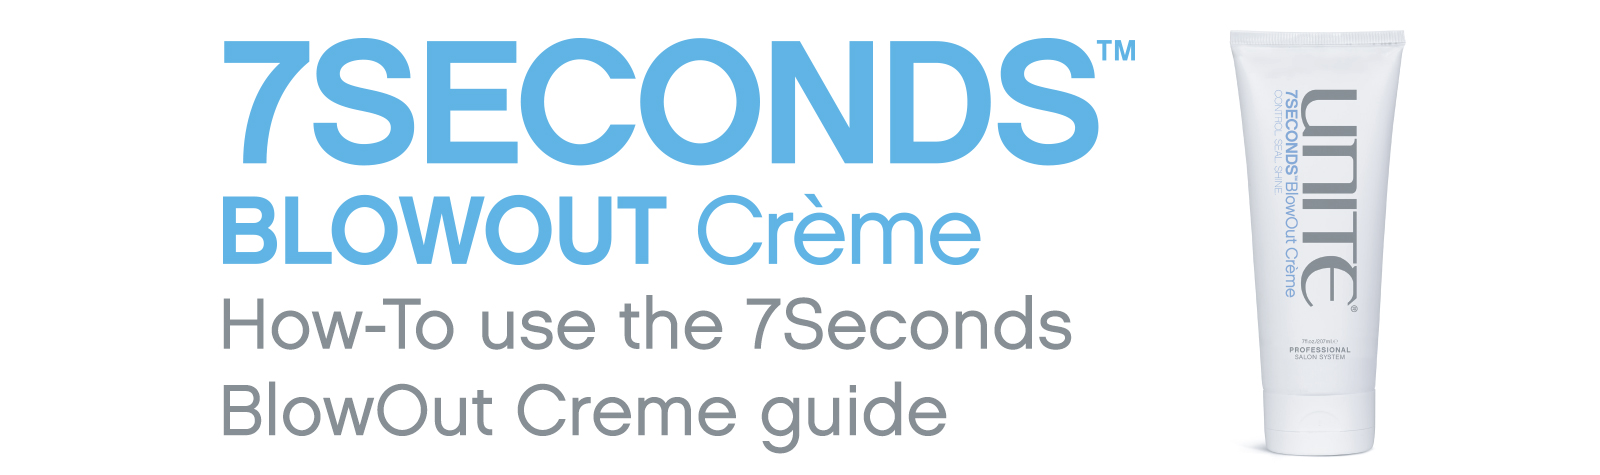 Unite 7 Seconds BlowOut Creme Step by Step Guide